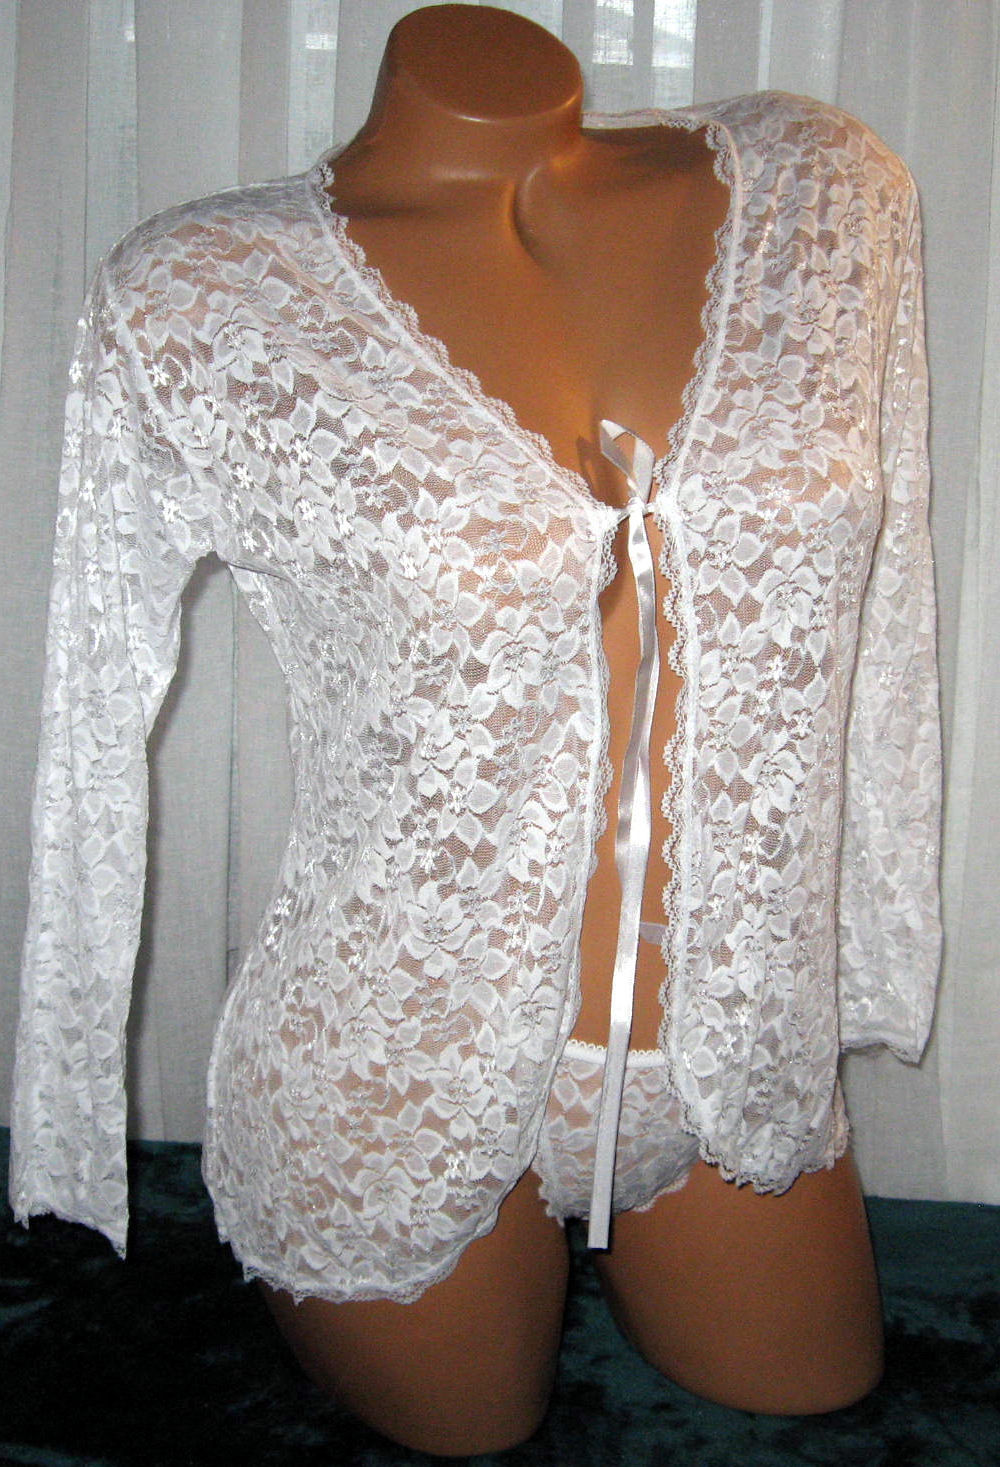 "White Lace Bed Jacket & Thong O/S Regular Bust 40"" Stretch Lace 2 Piece Lingerie"